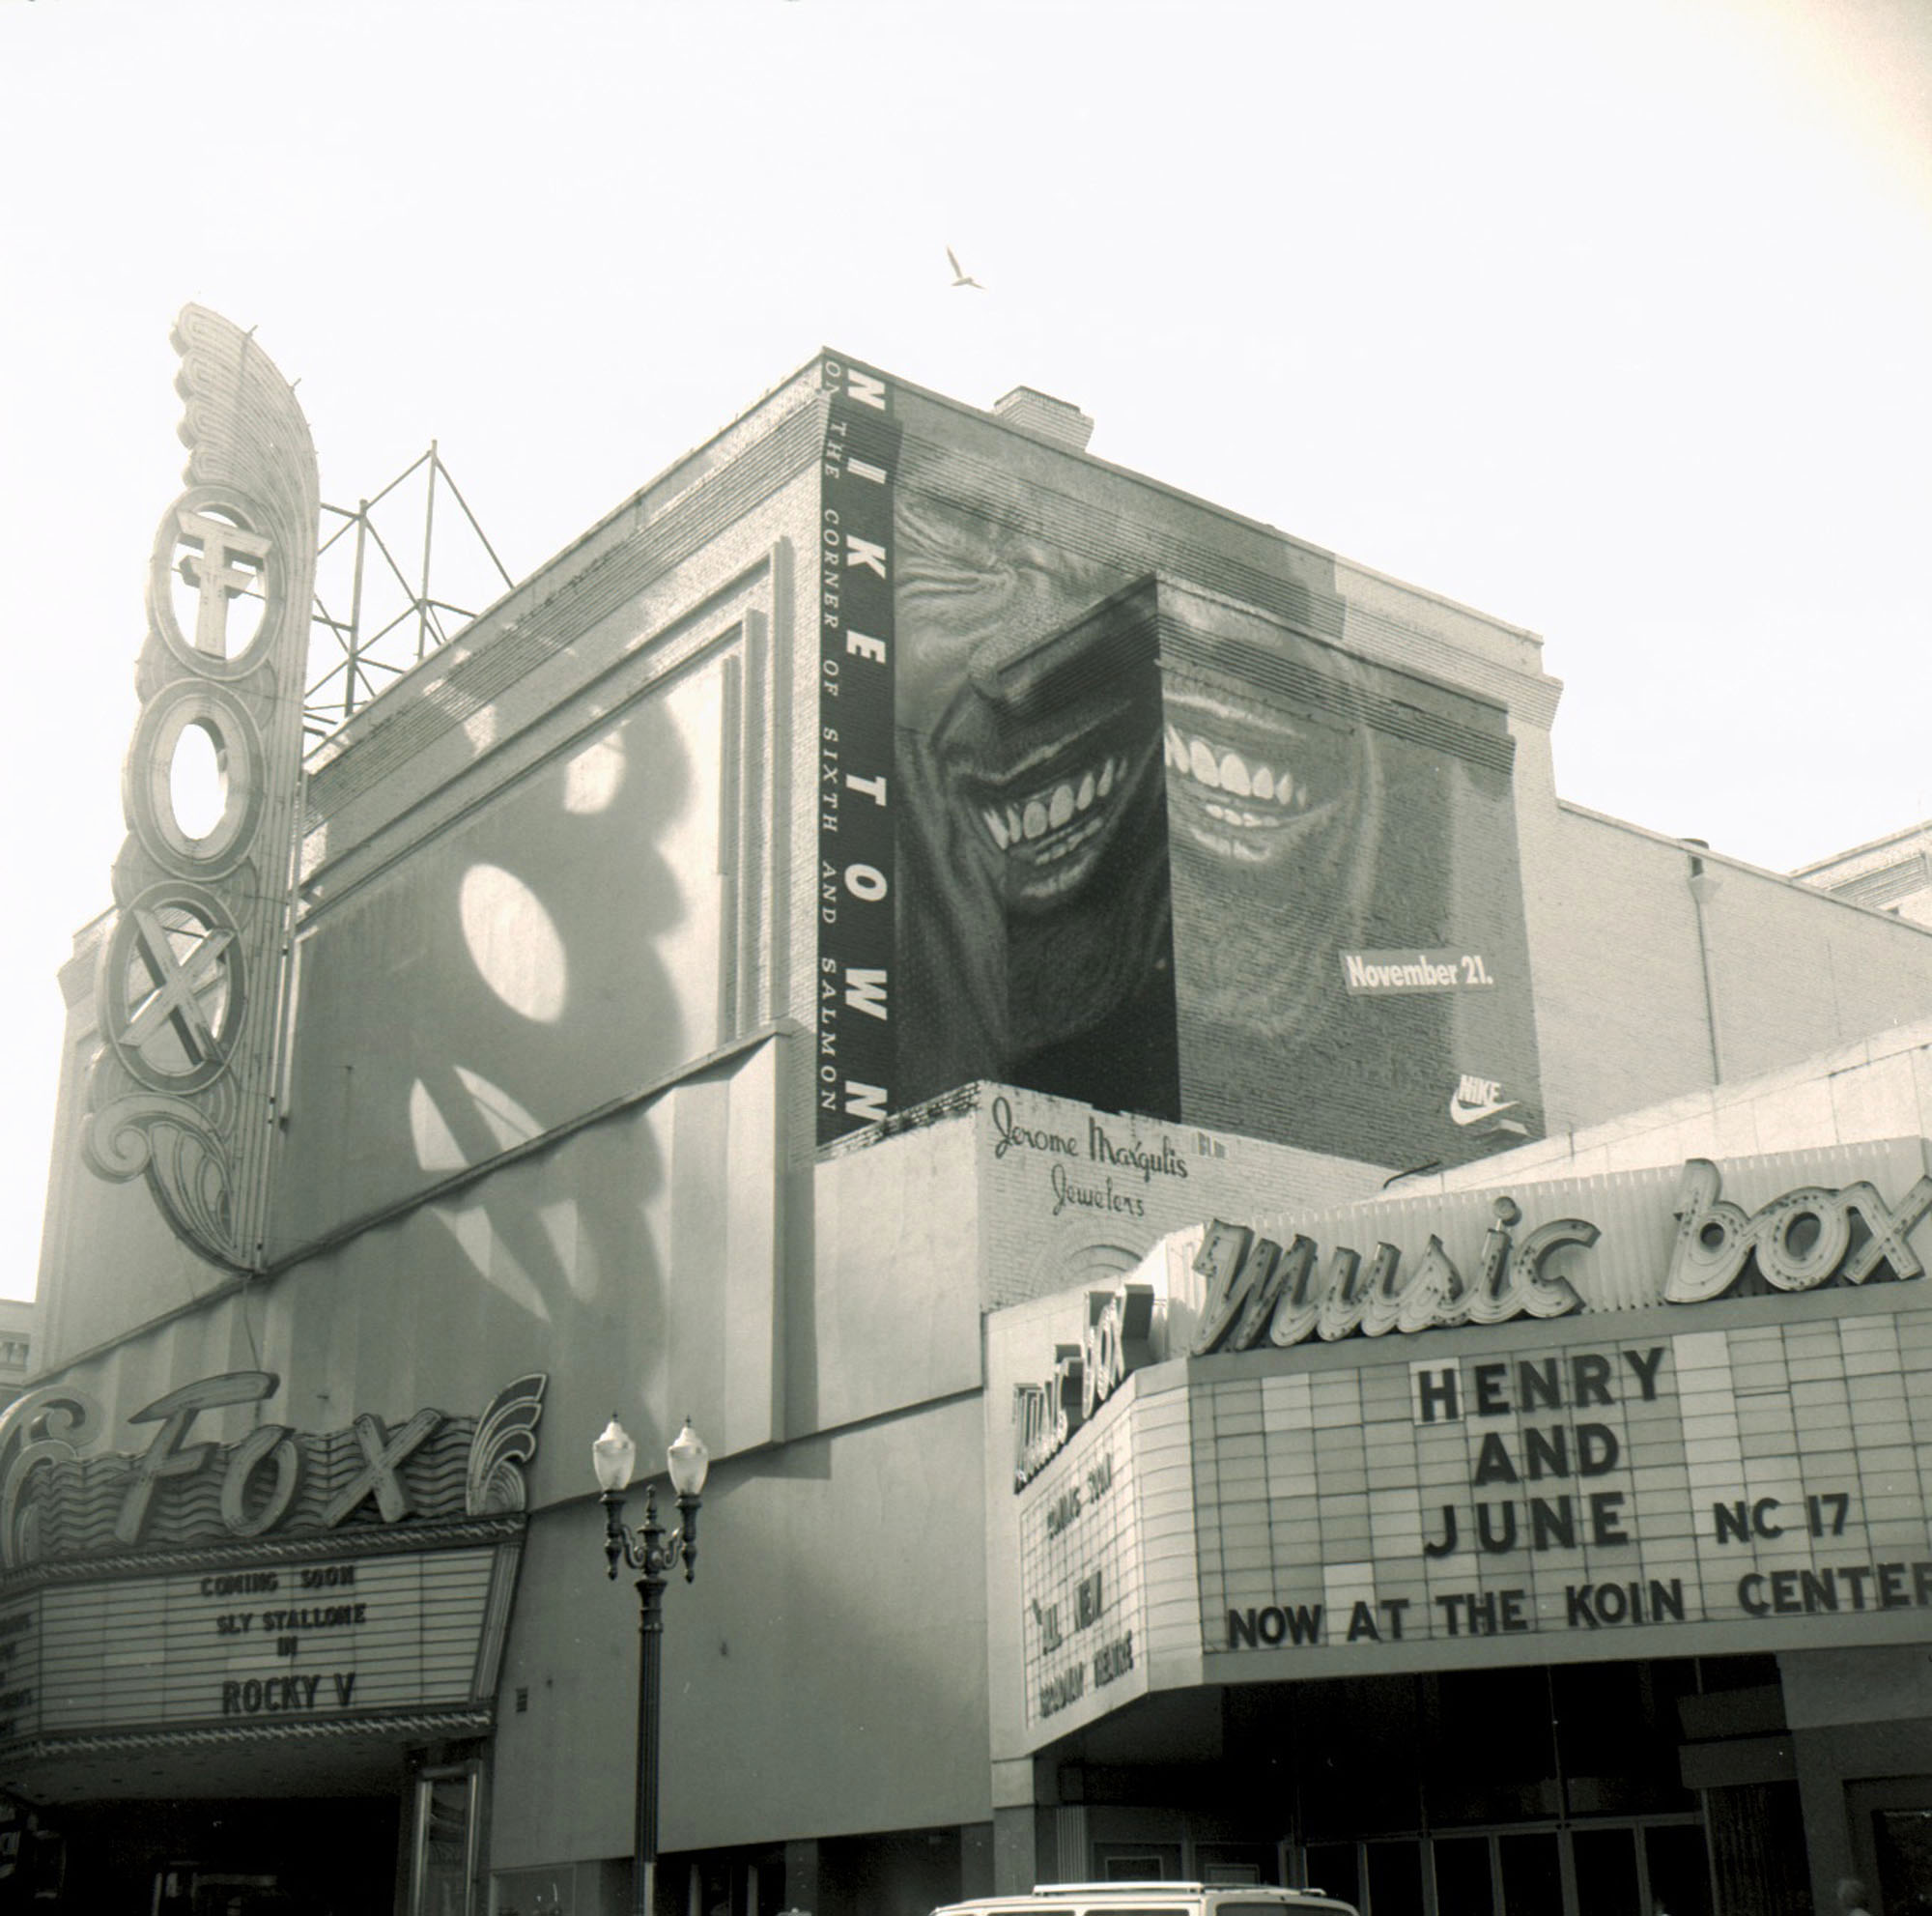 fox amp music box theaters 1991 vintage portland